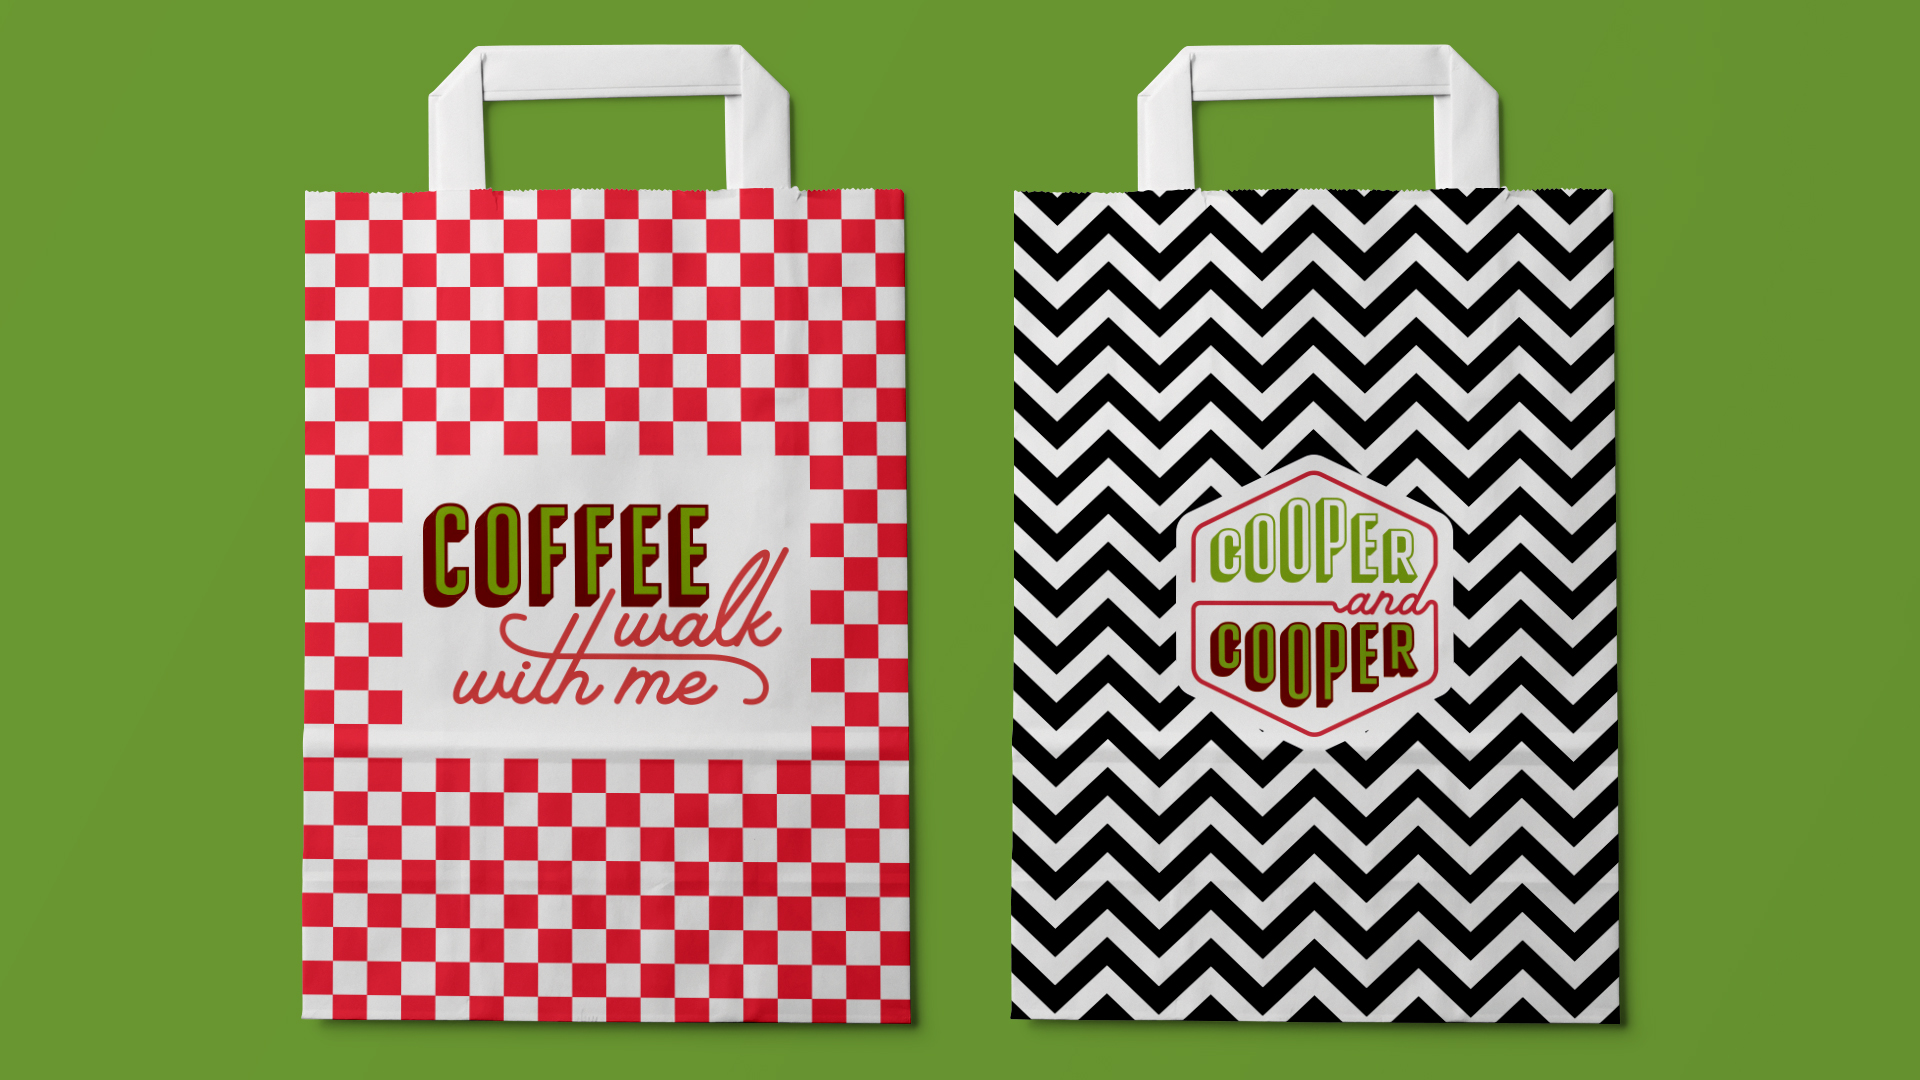 Cooper and Cooper Coffee and Twin Peaks / World Brand Design Society